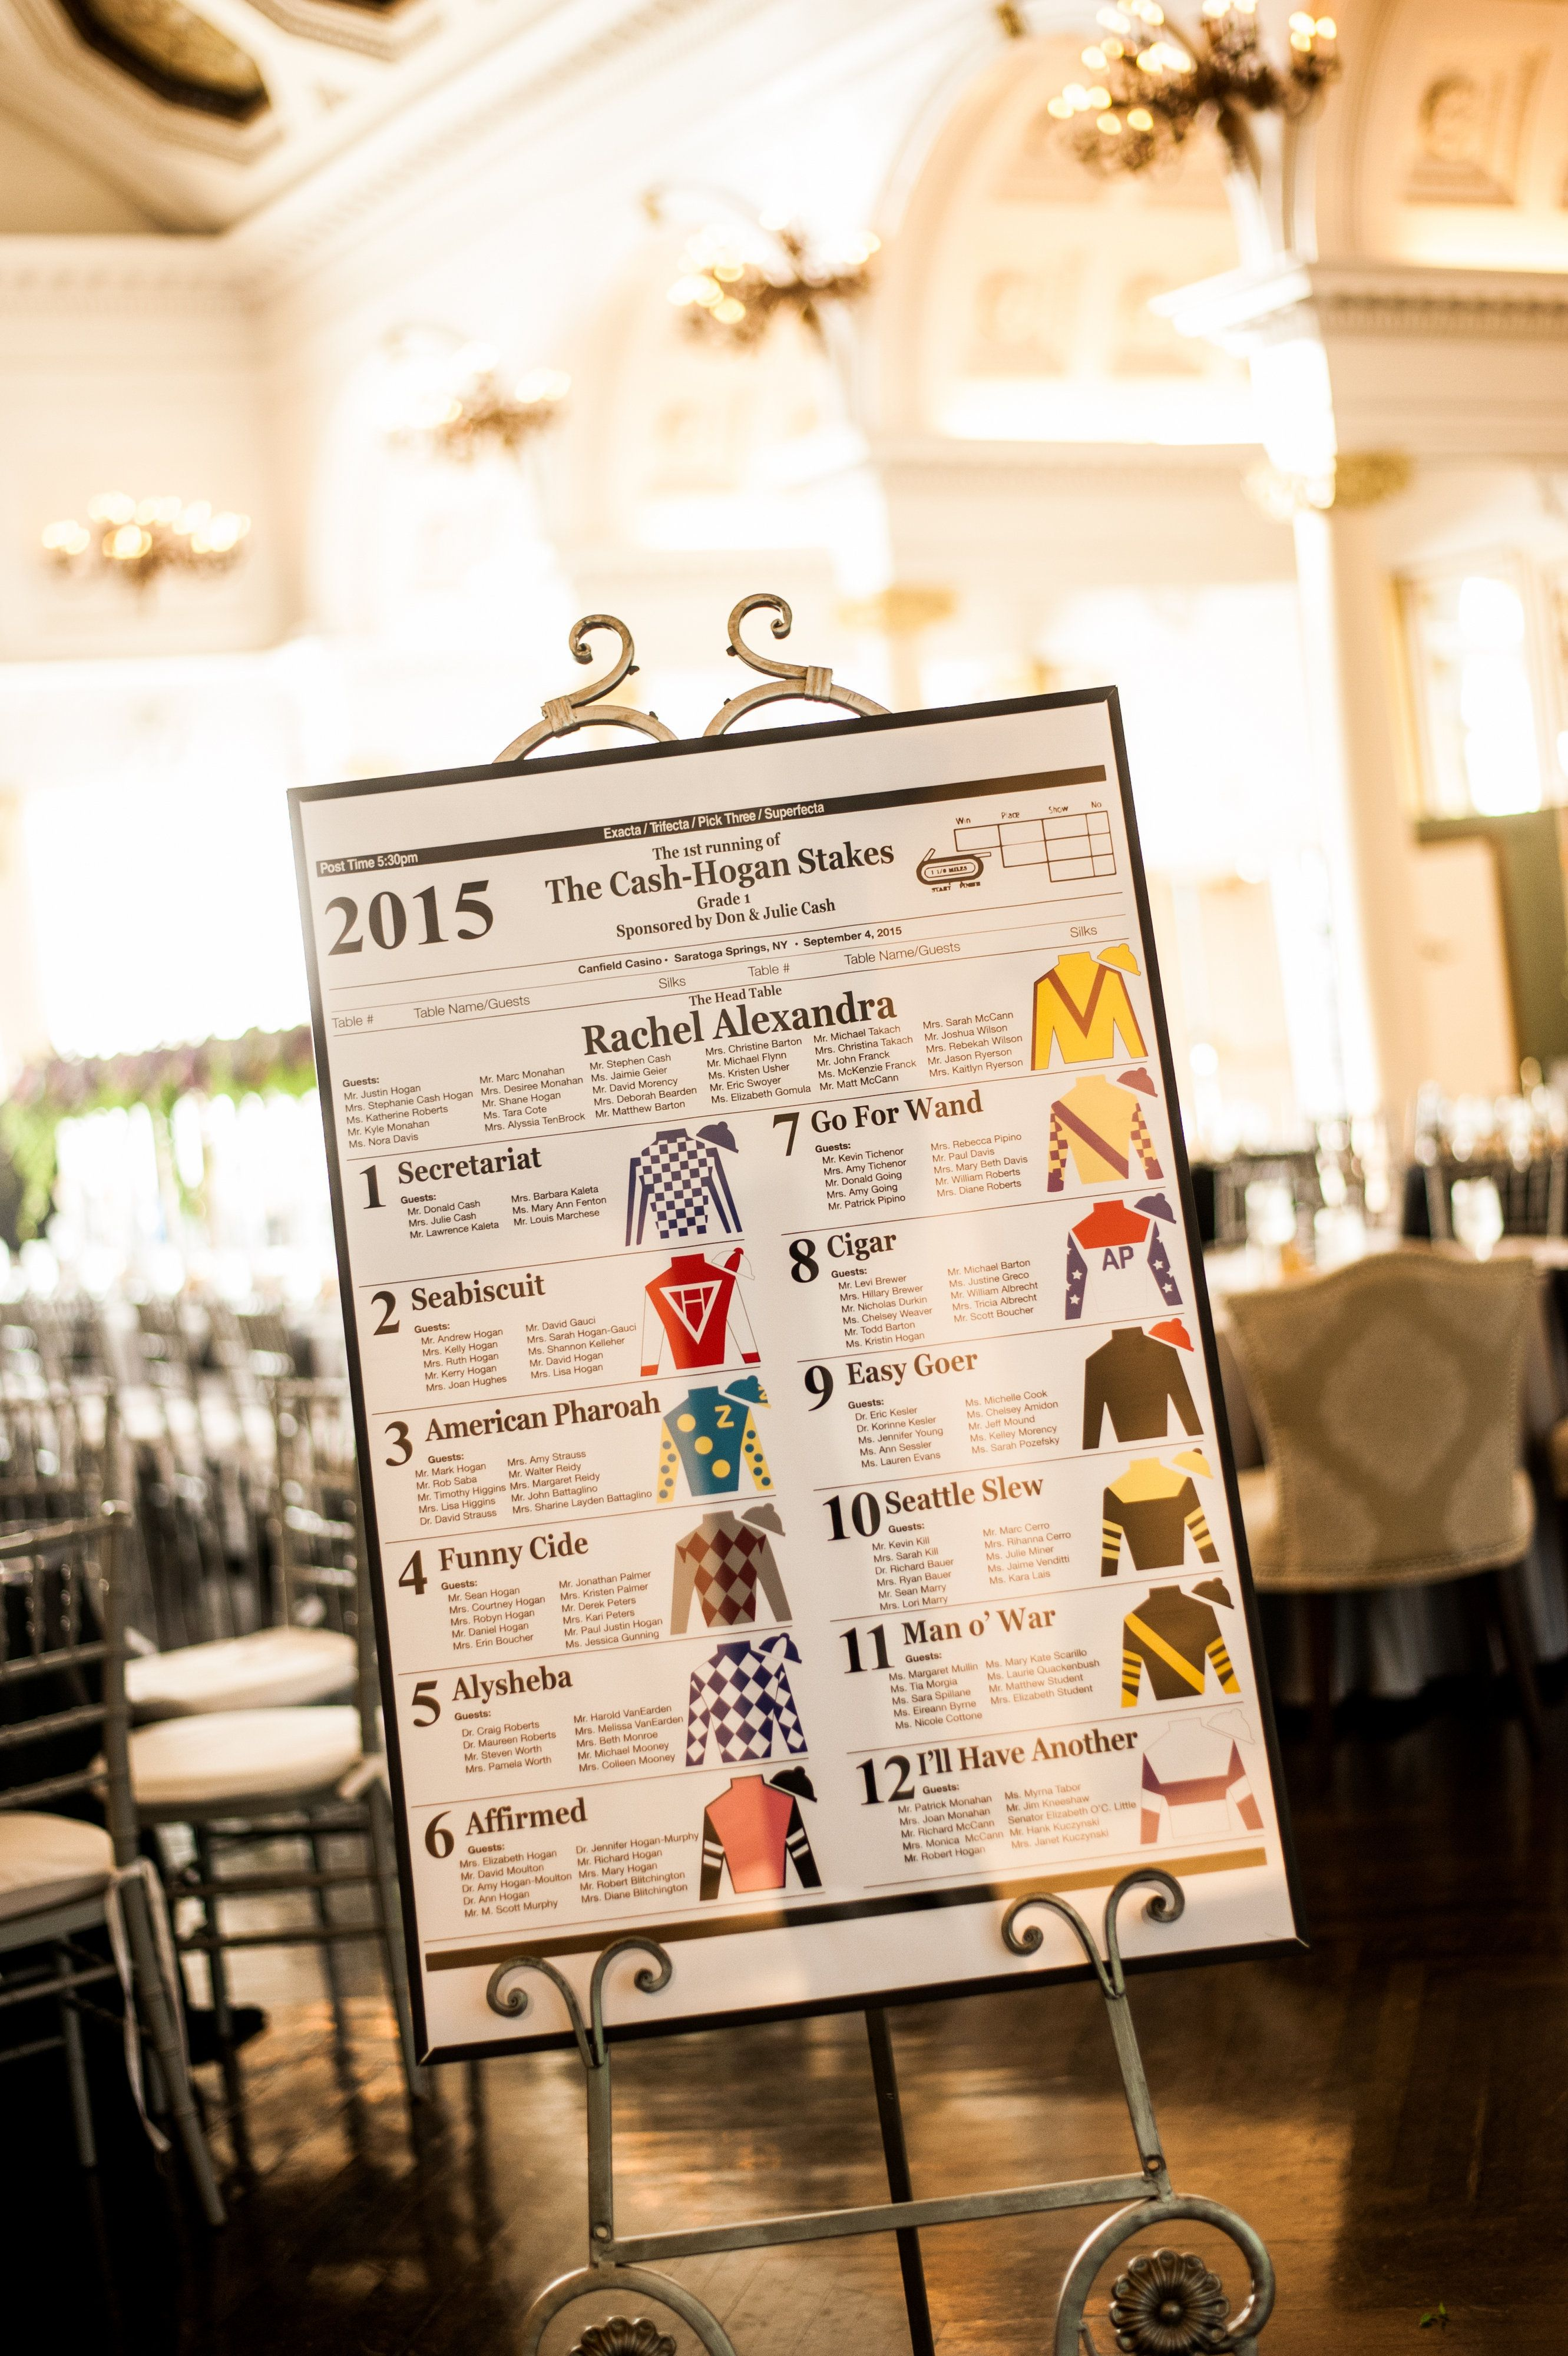 Racetrack inspired wedding ideas. Derby party ideas. Horse racing ...